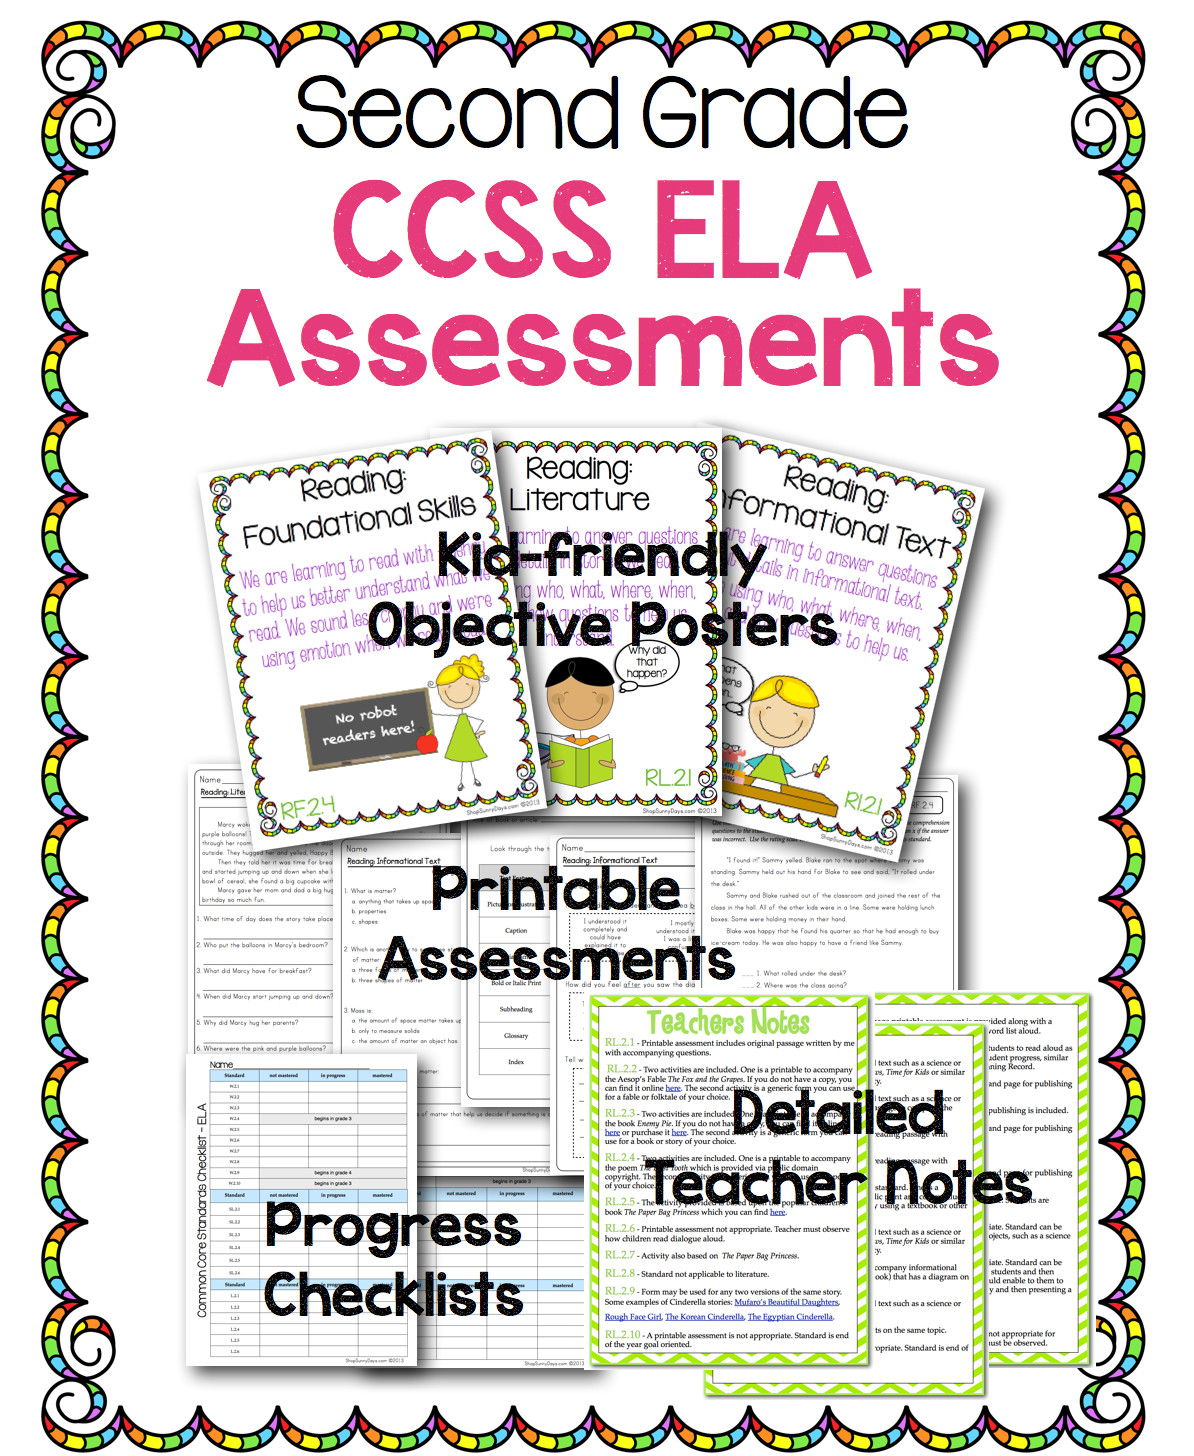 Common Core ELA Assessments for 2nd Grade